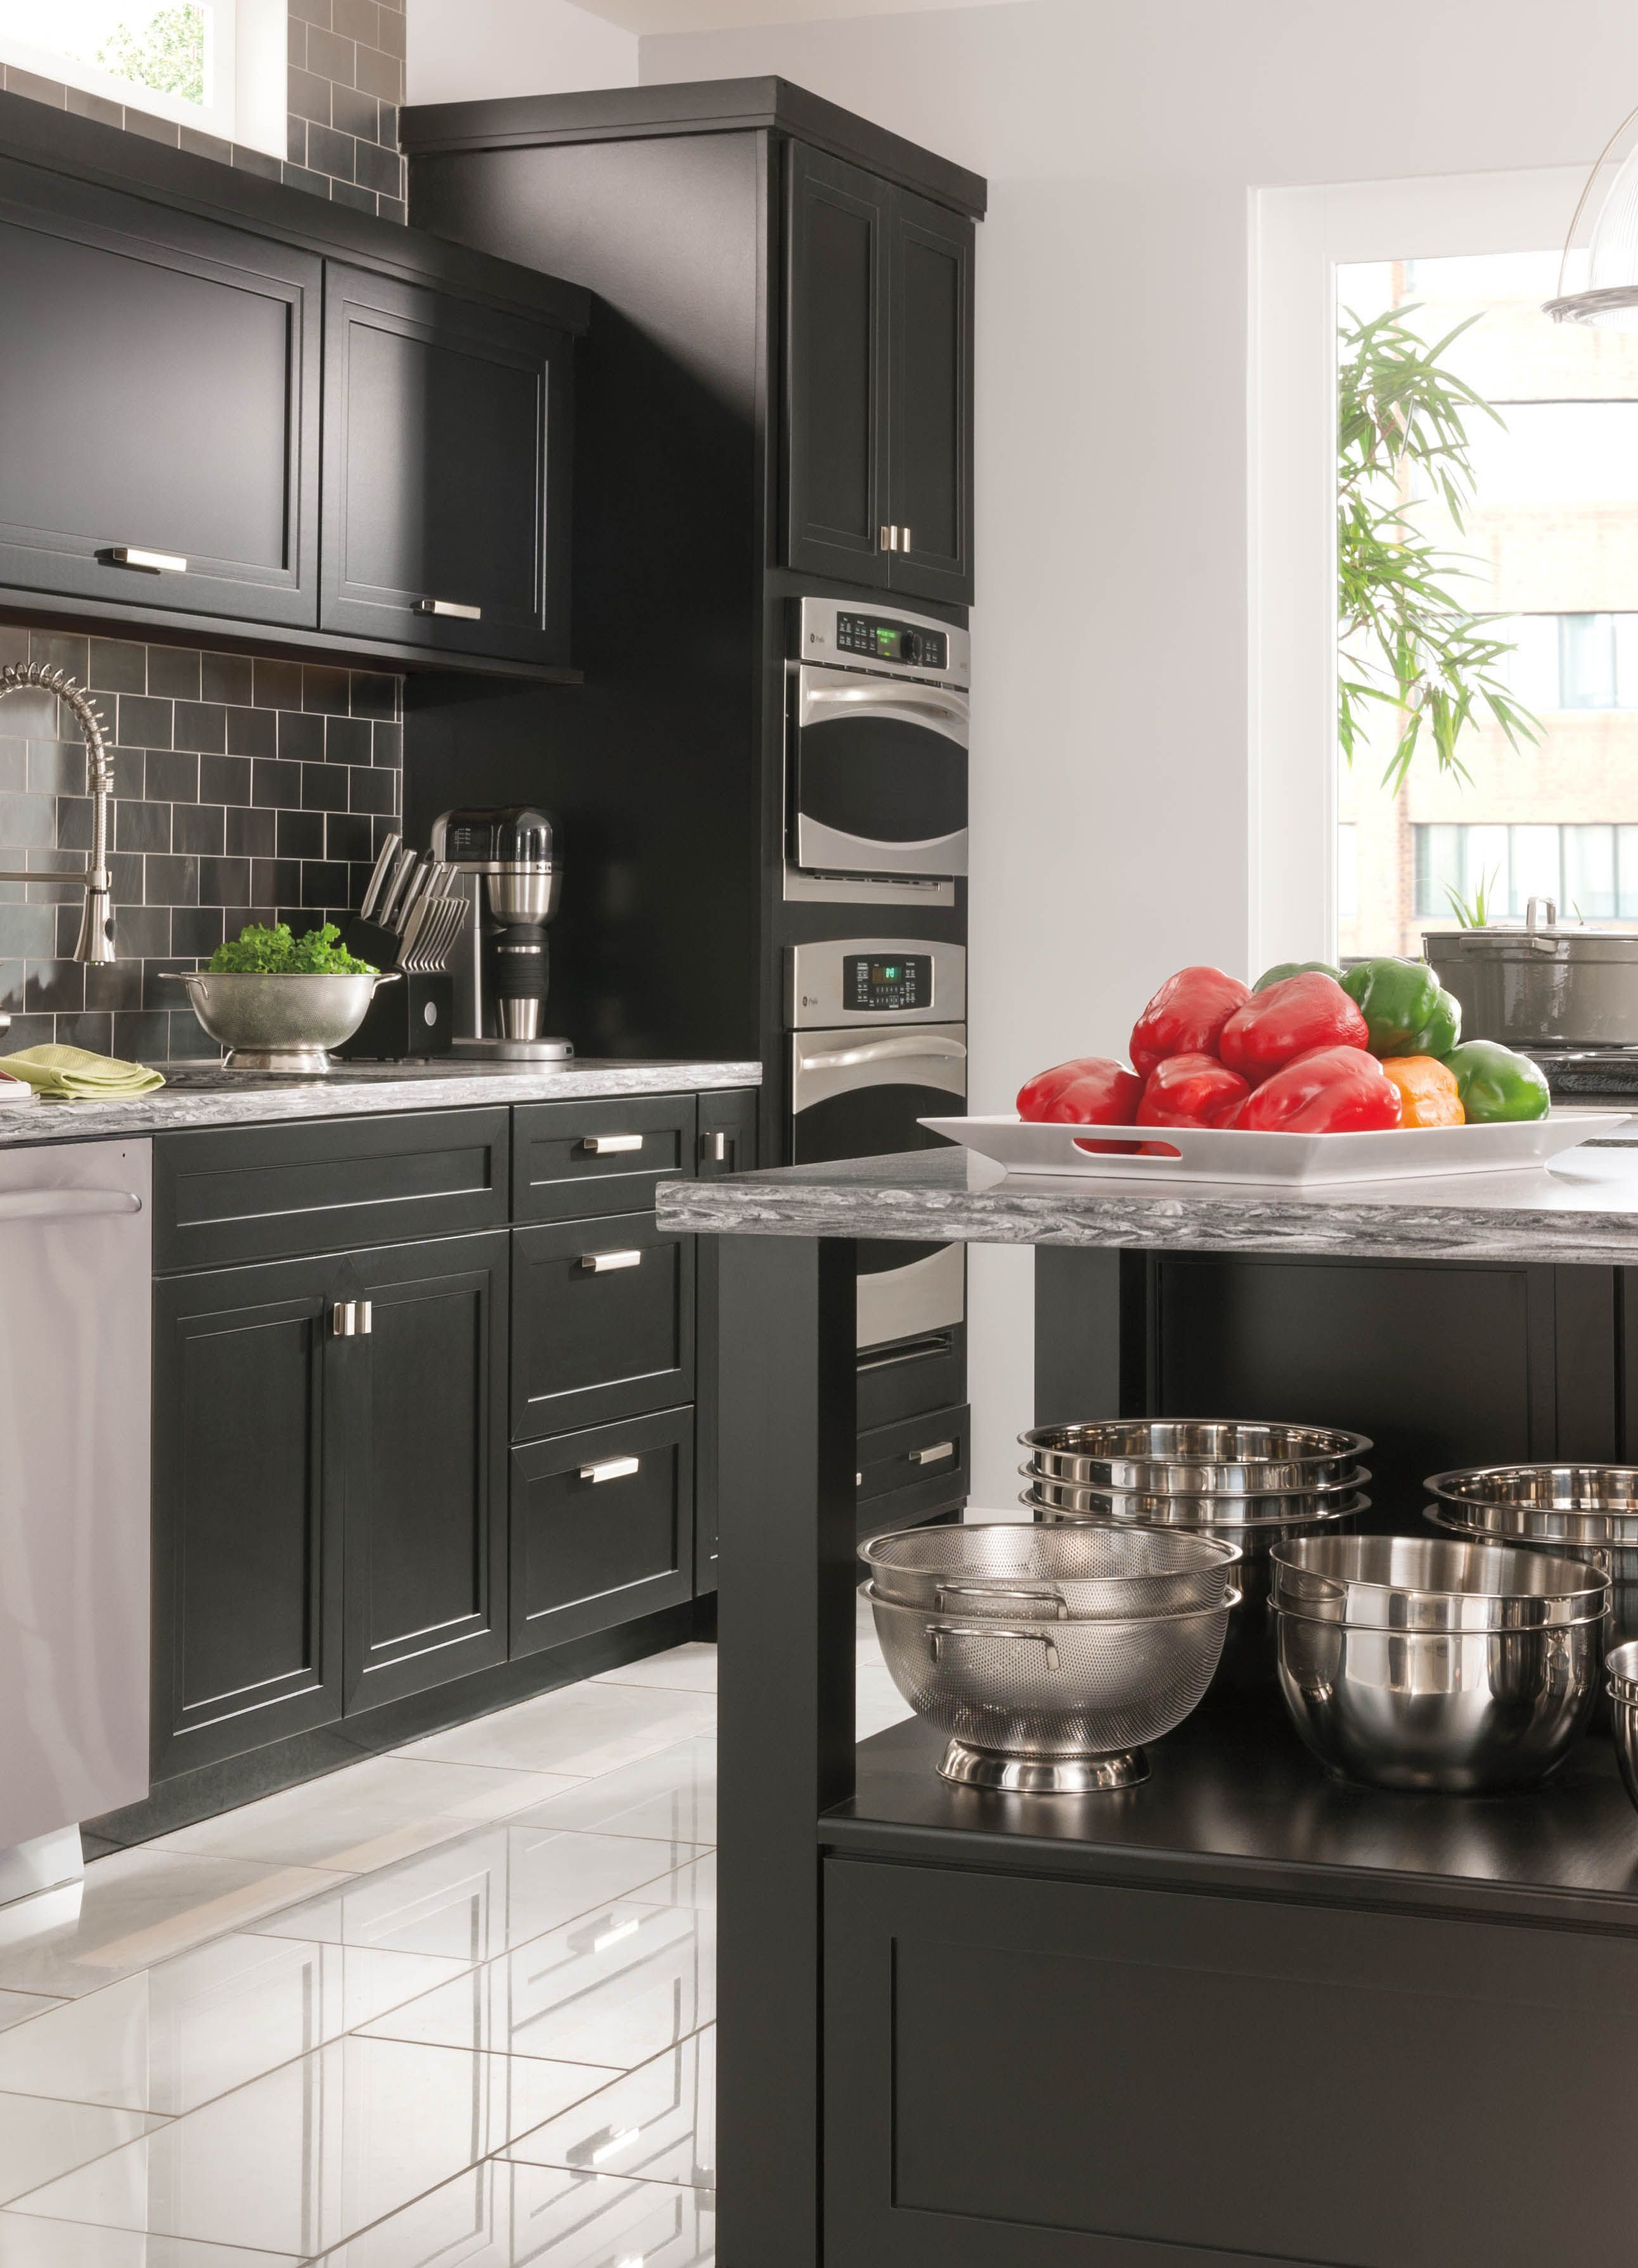 Planning A Kitchen Remodel Doesn T Have To Be A Nightmare Shop Marthastewartliving At The Home Depot Kitchen Layout Home Kitchens Kitchen Tiles Design